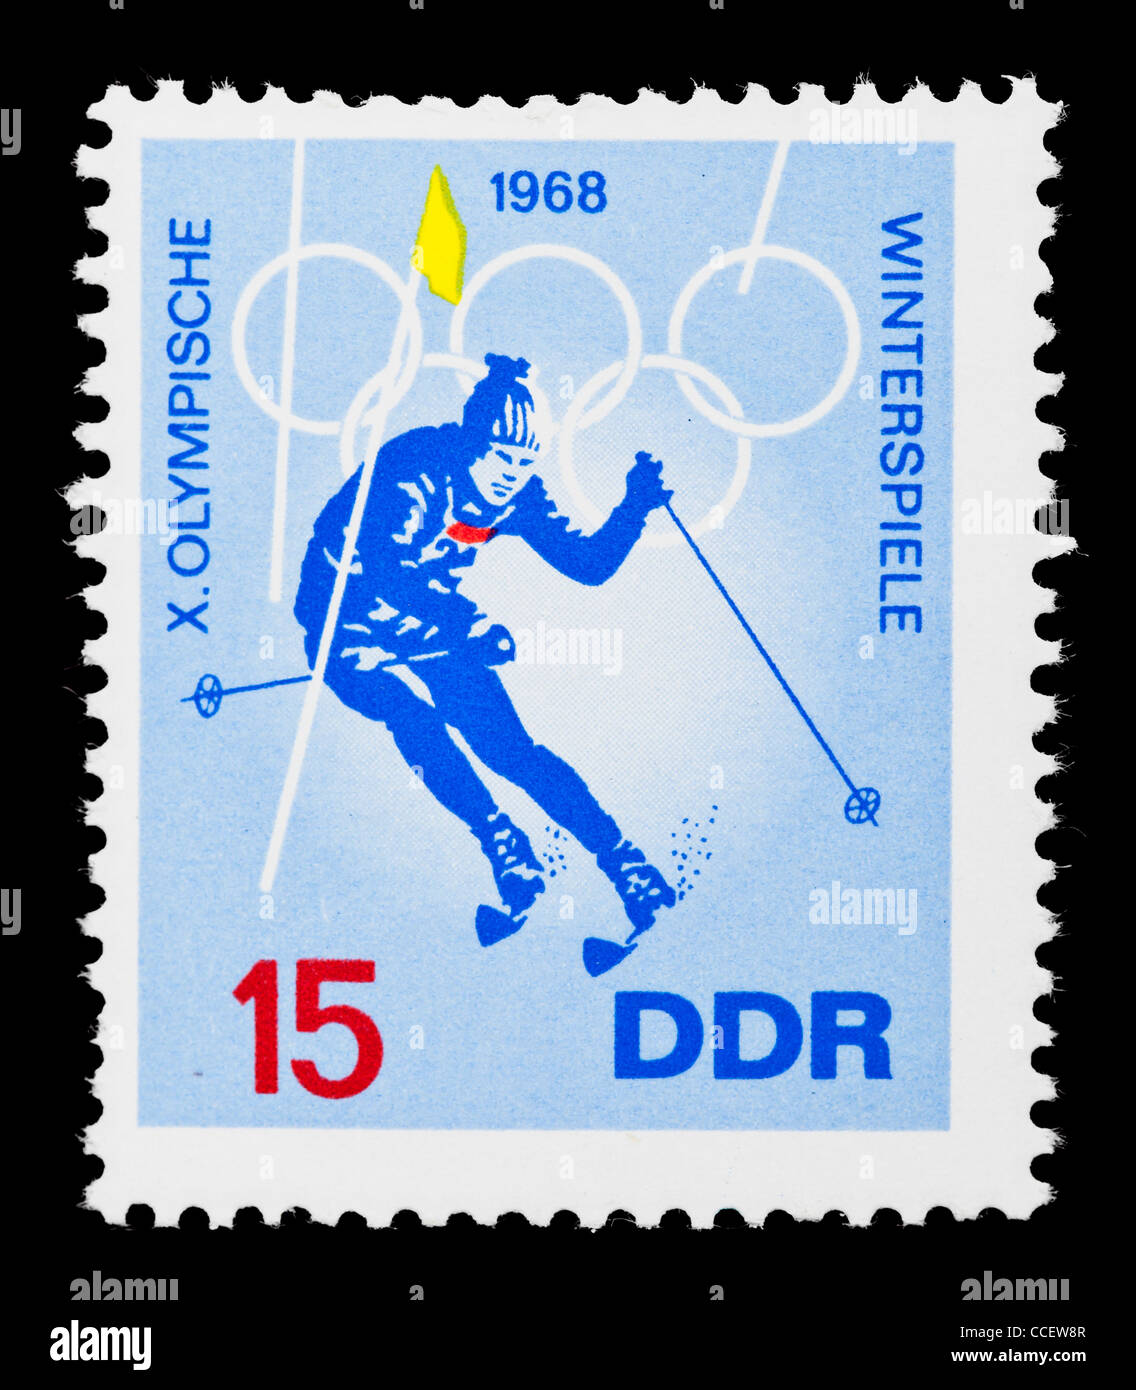 Sello X Juegos Olimpicos De Invierno De 1968 Ddr Mint Condition